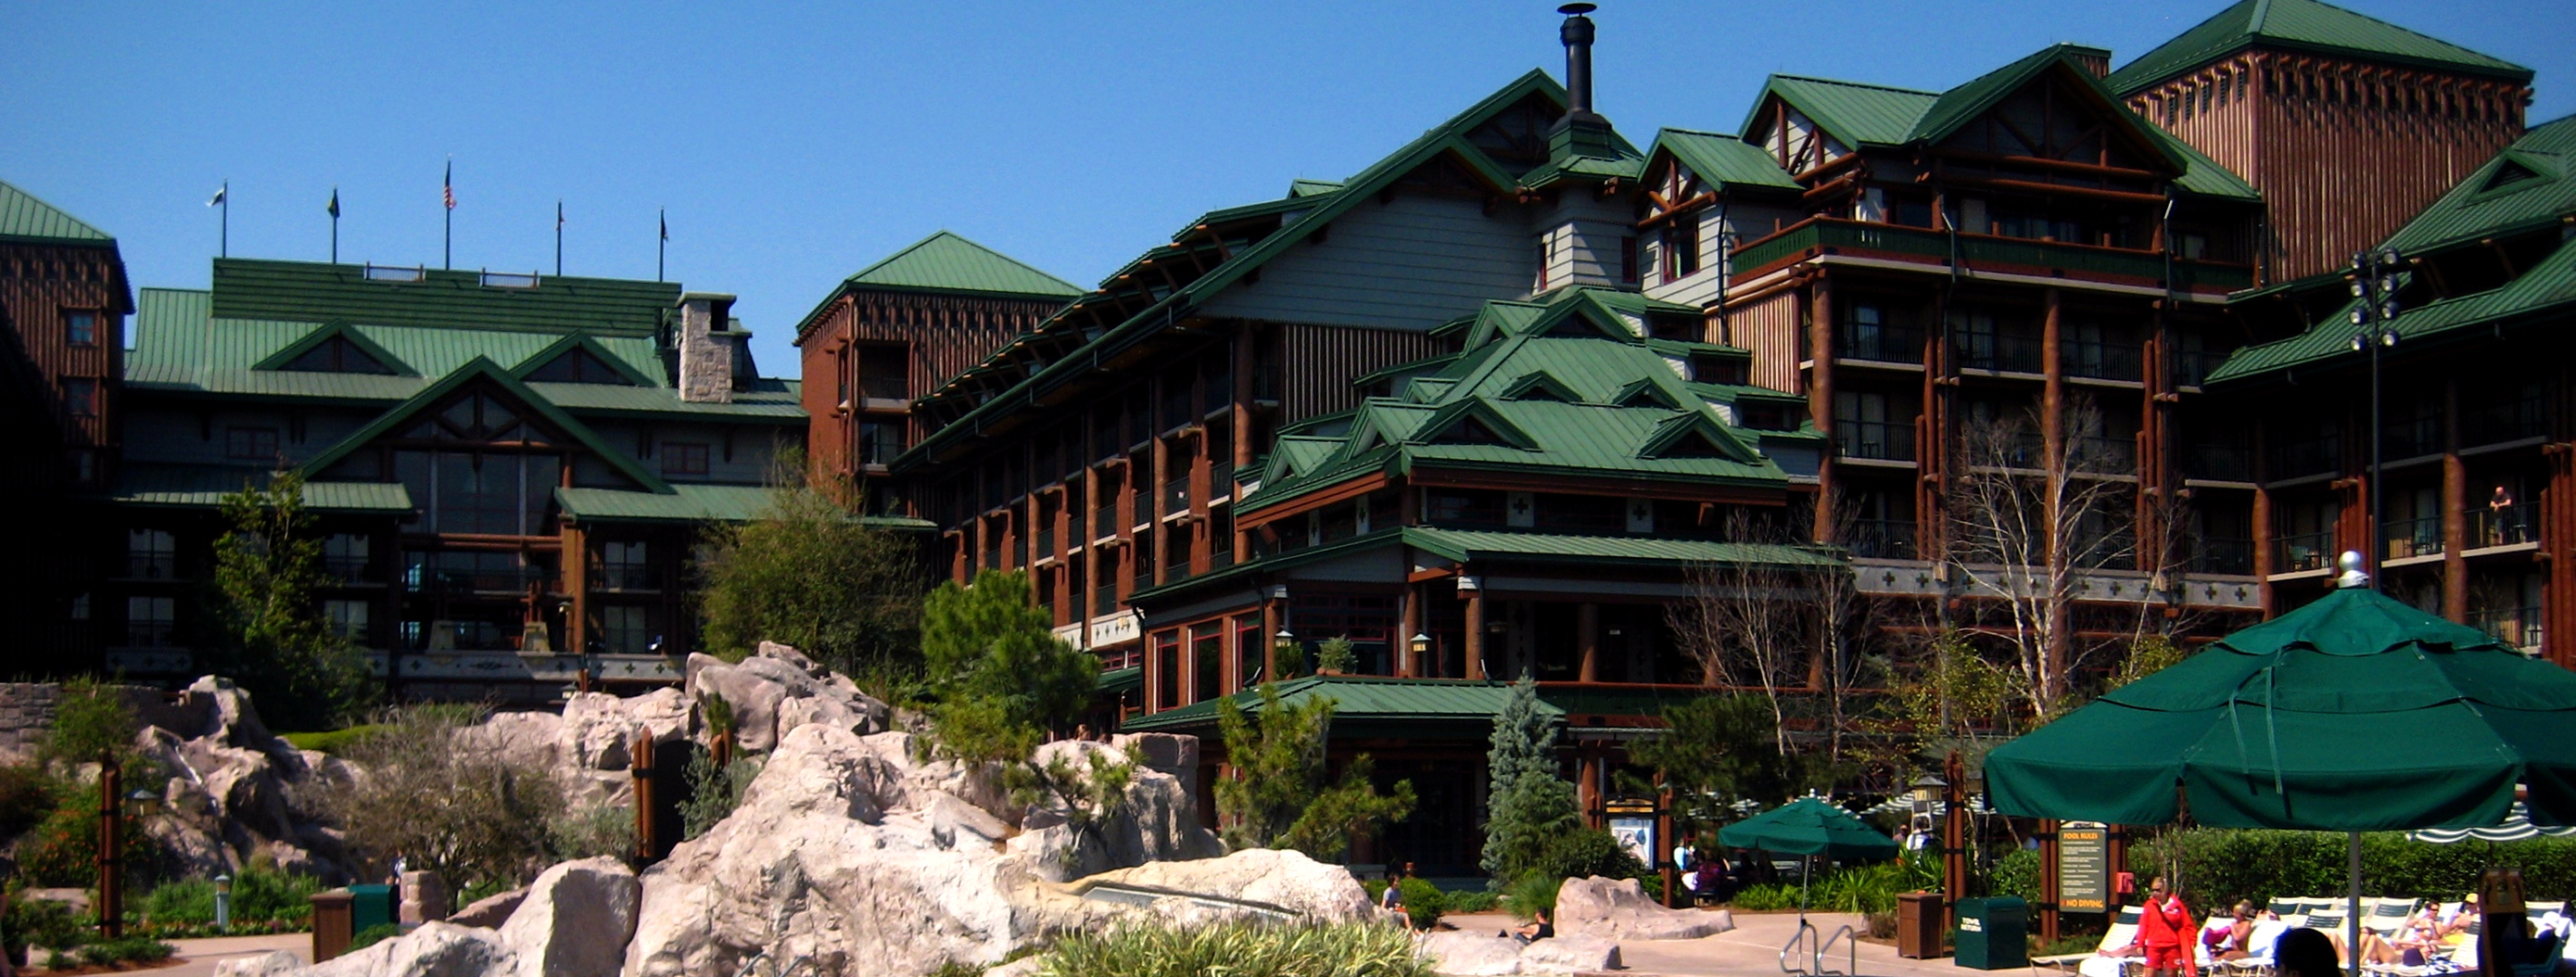 Picture of Disney's Wilderness Lodge